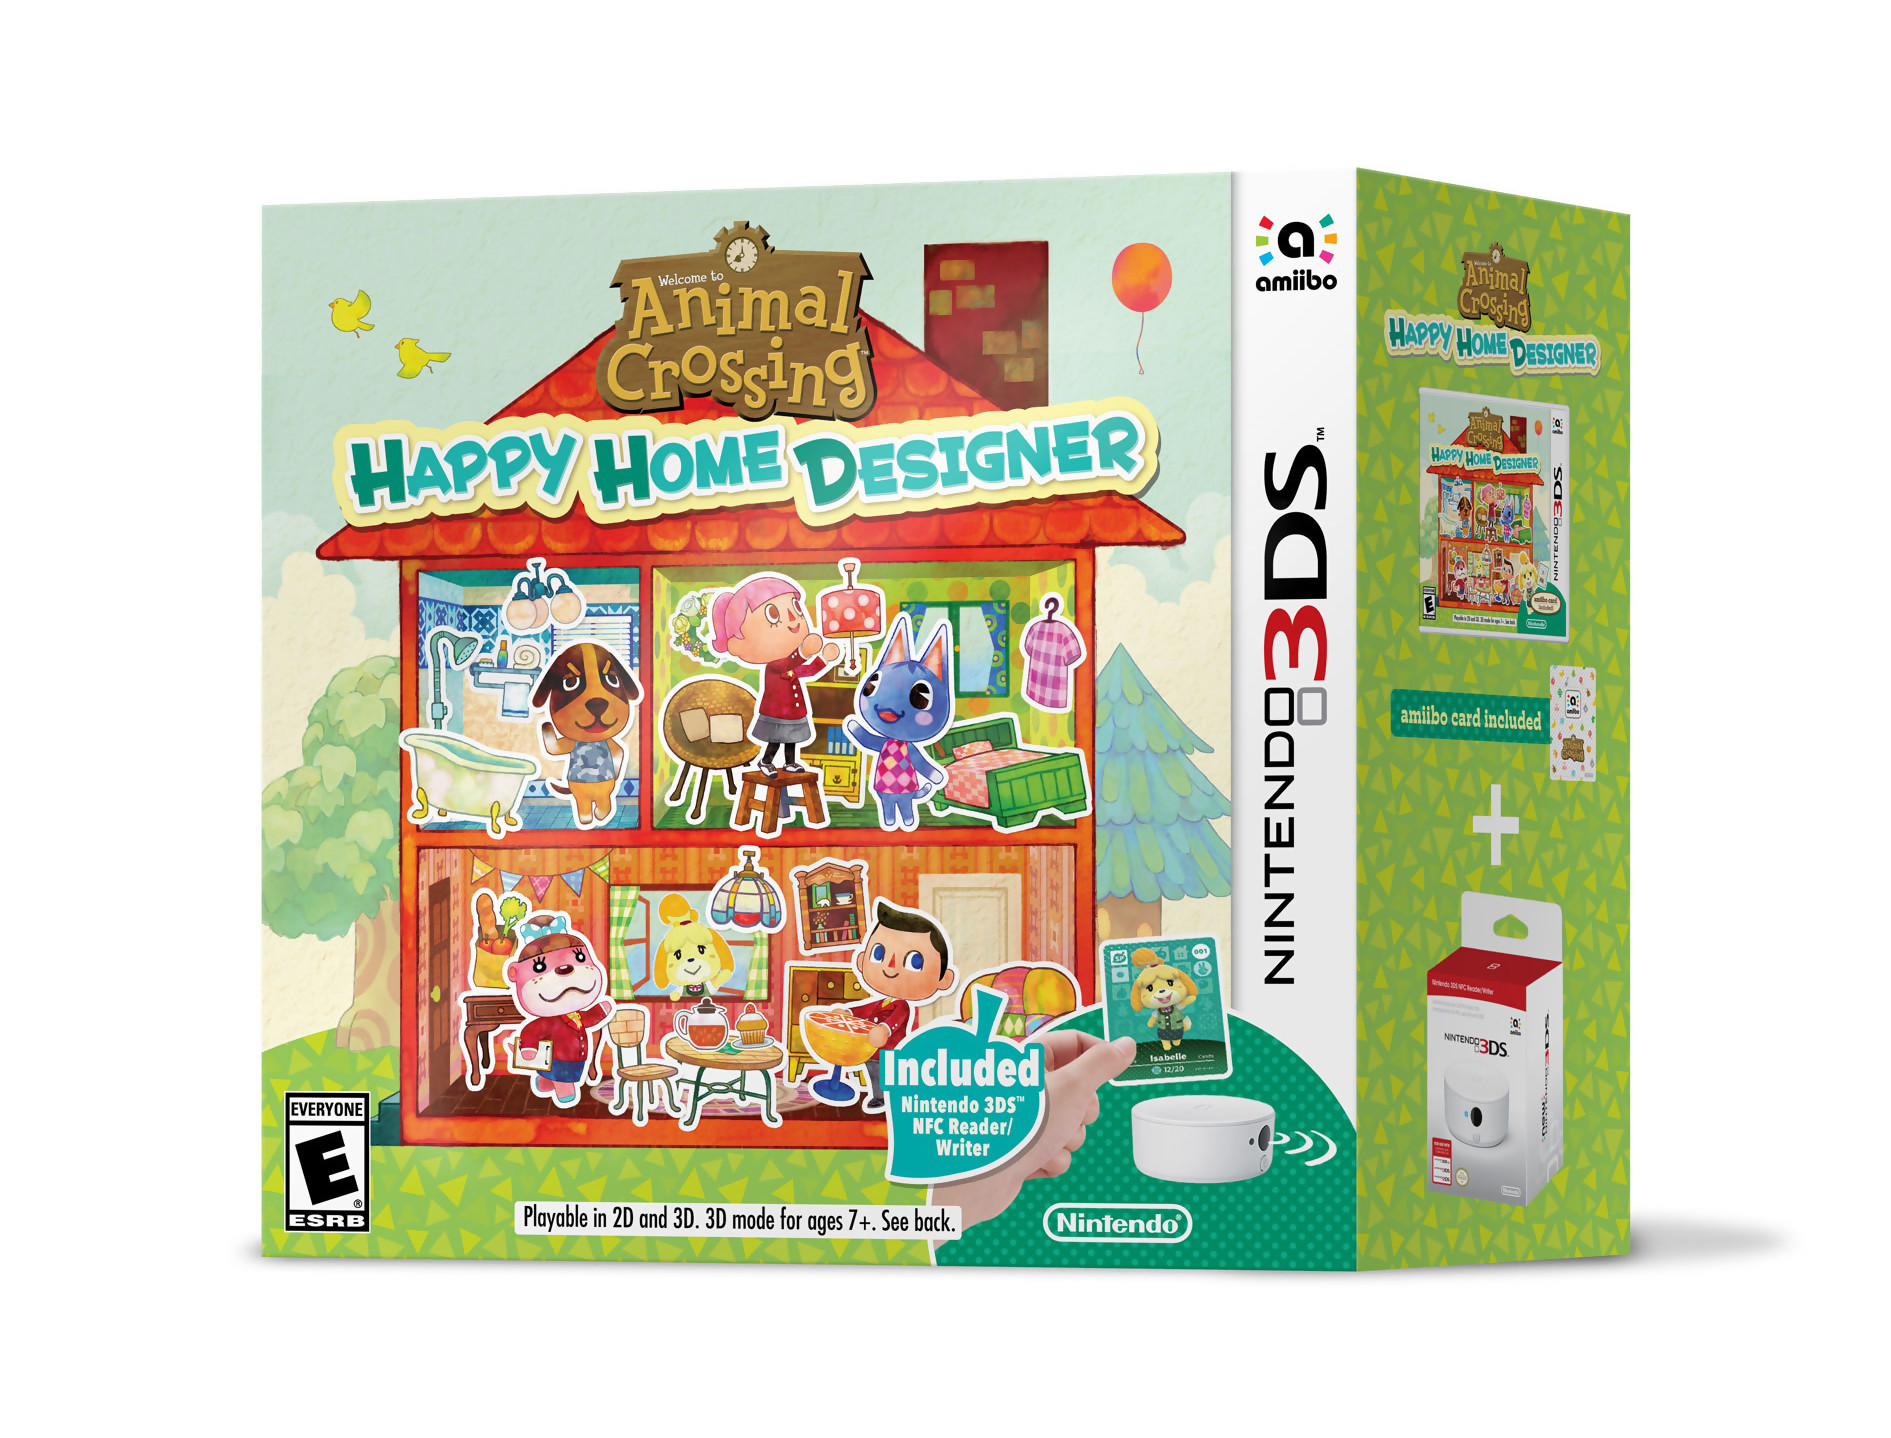 Animal Crossing Happy Home Designer : un bundle New 3DS arrive aux